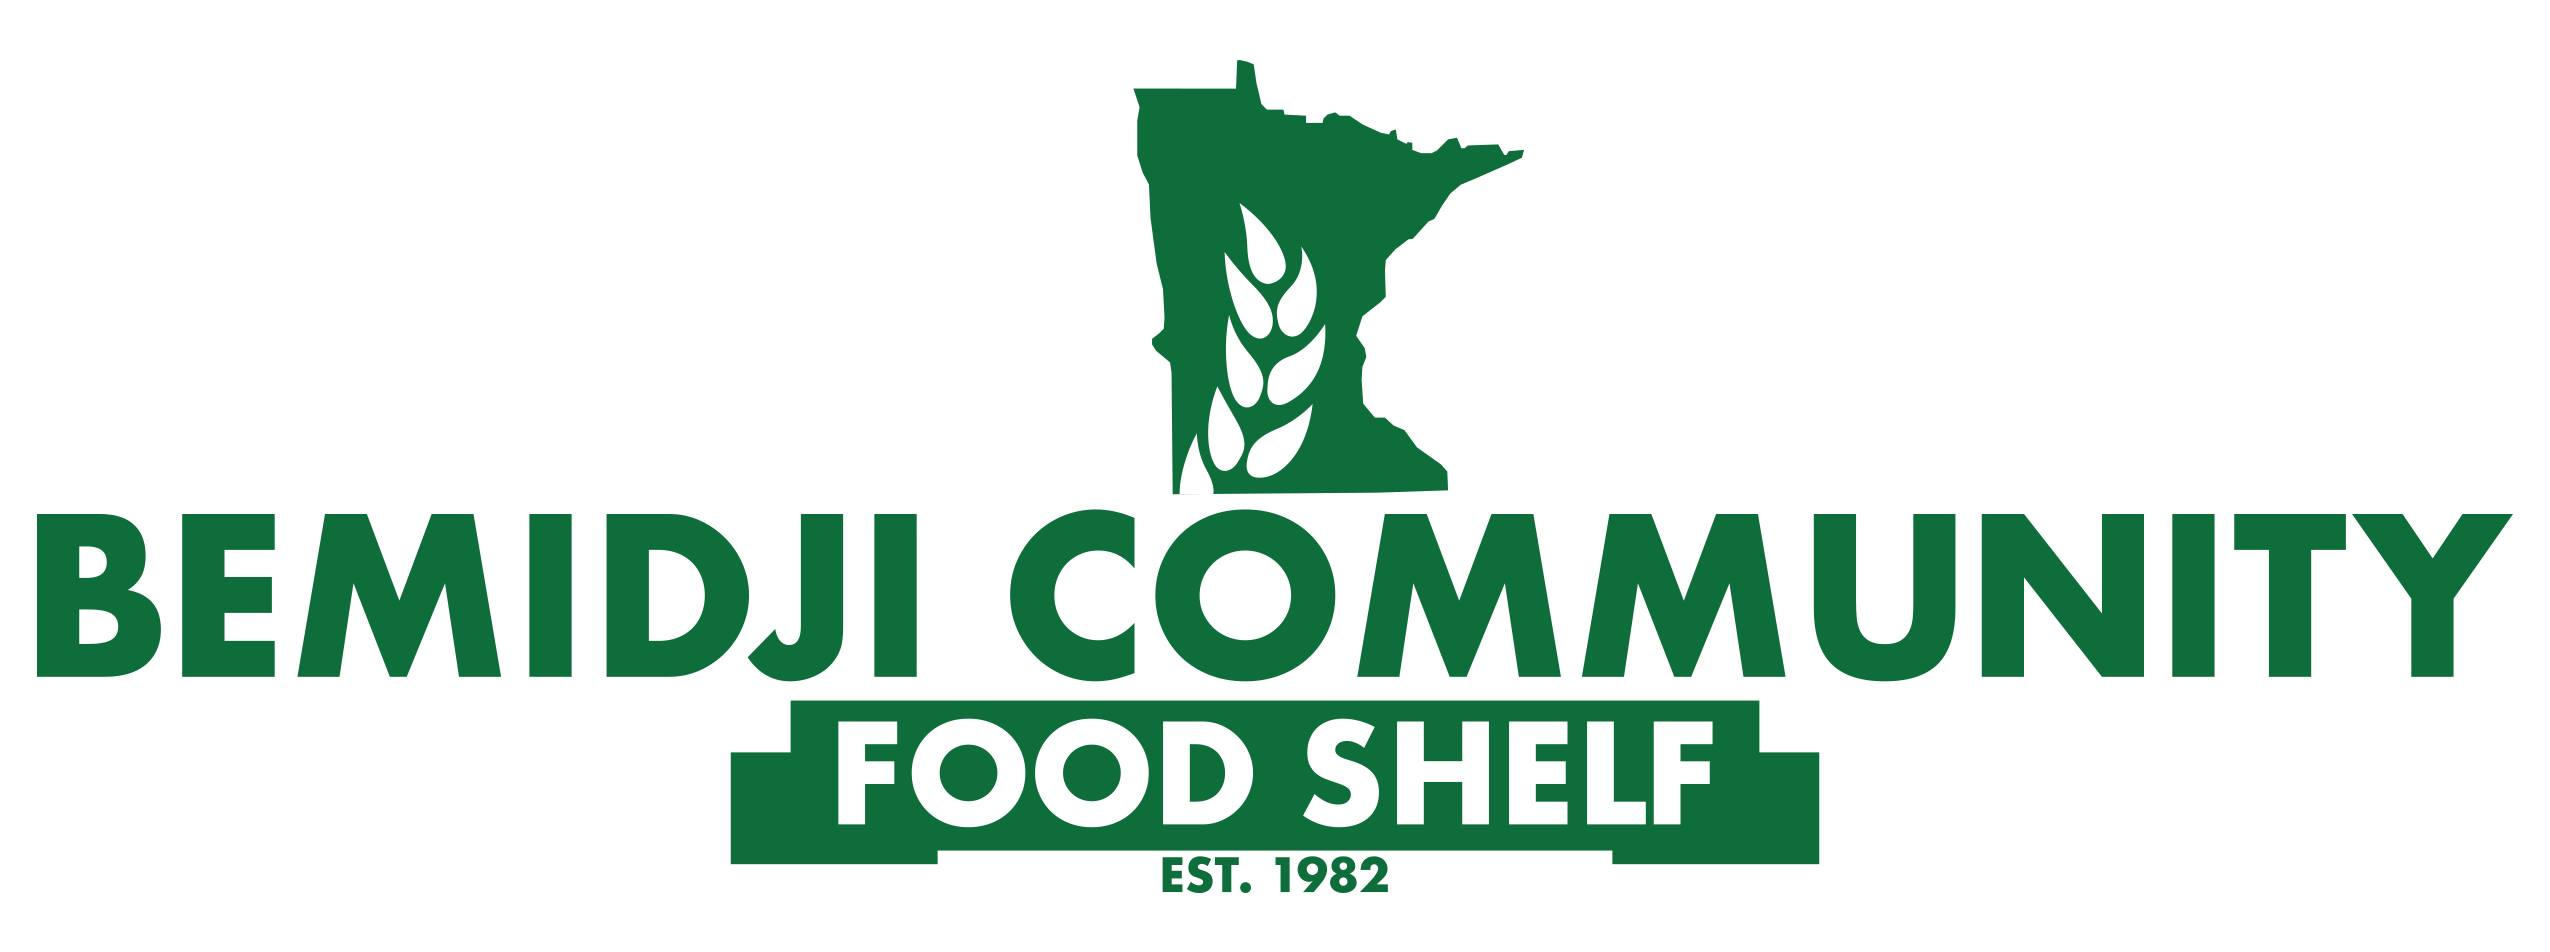 Bemidji Community Food Shelf